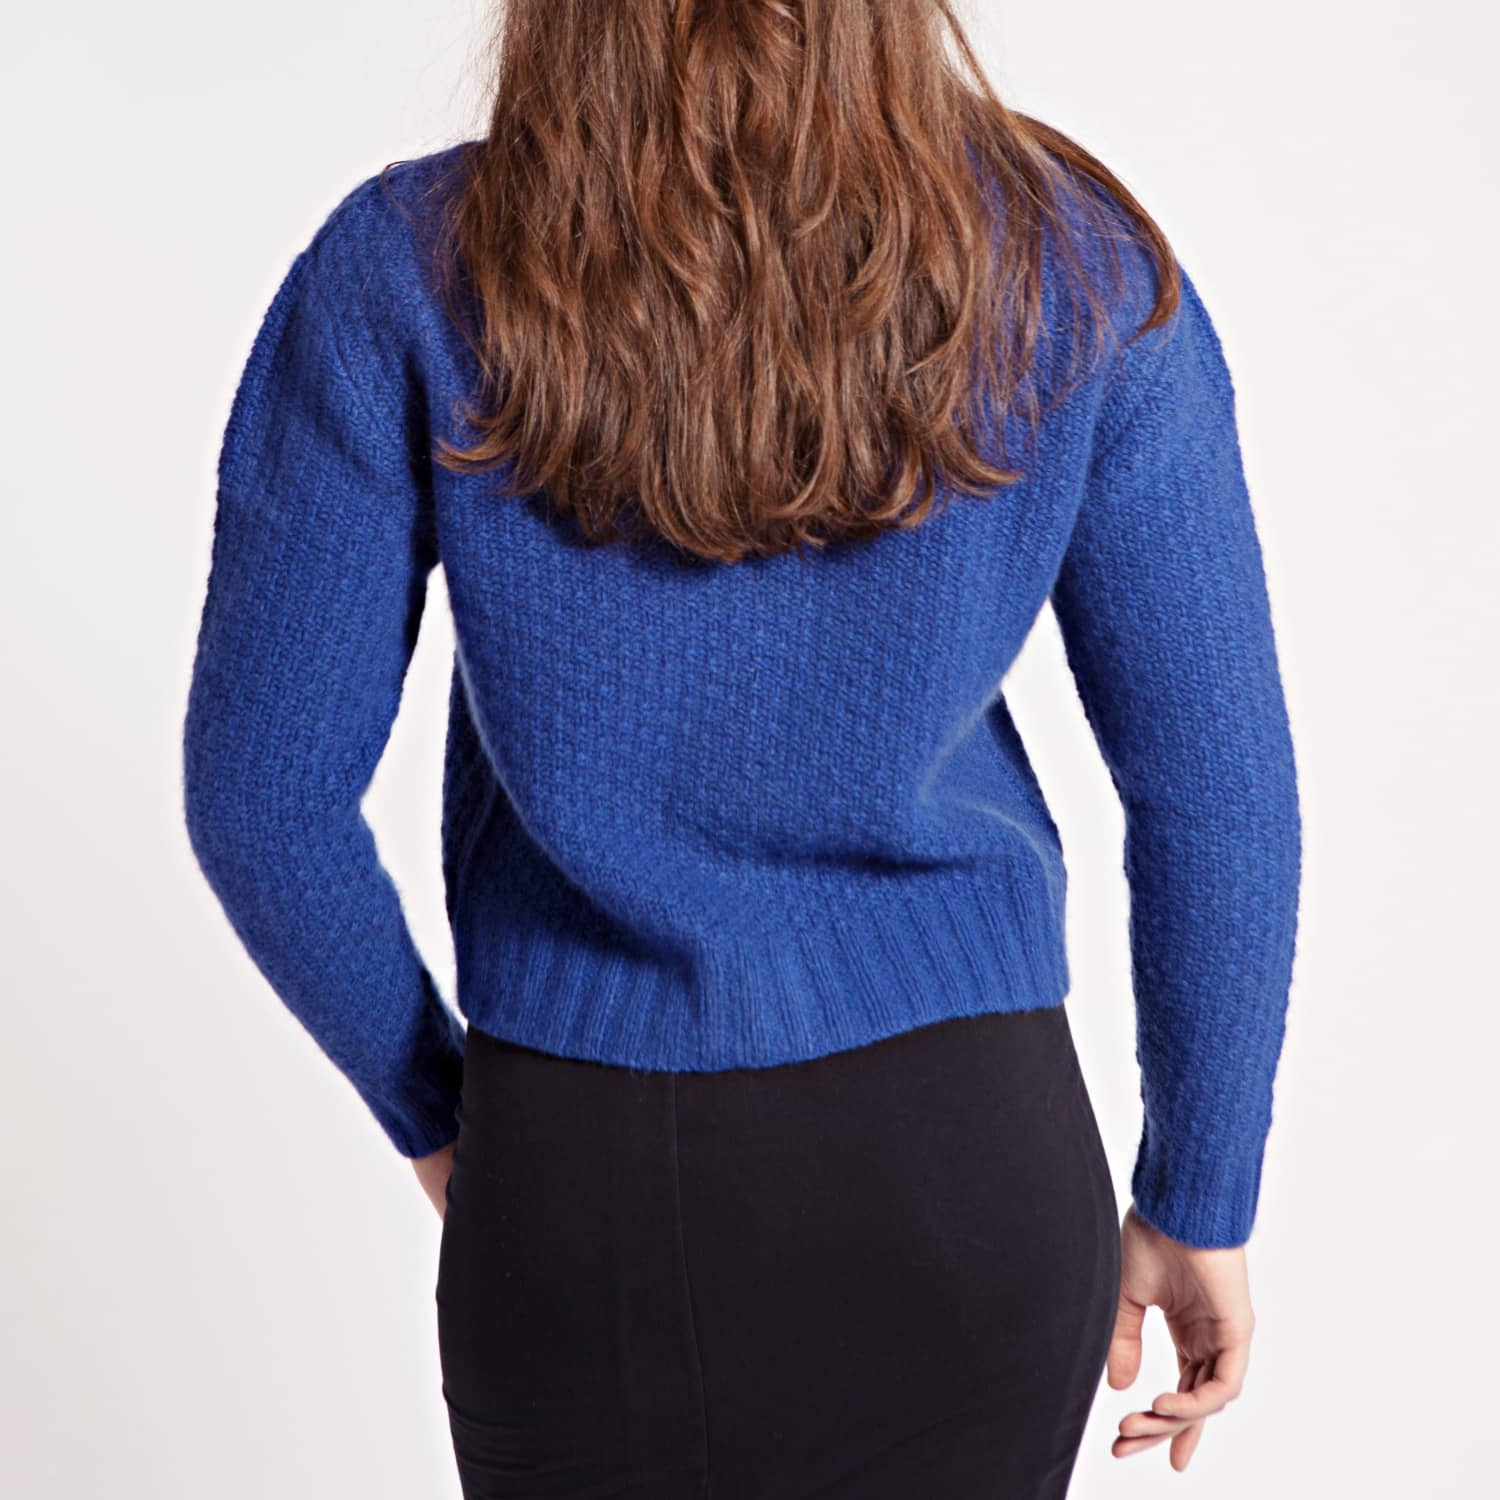 Blue Hand knitted Cardigan Jacket with Gold Buttons | Asneh | Wolf ...